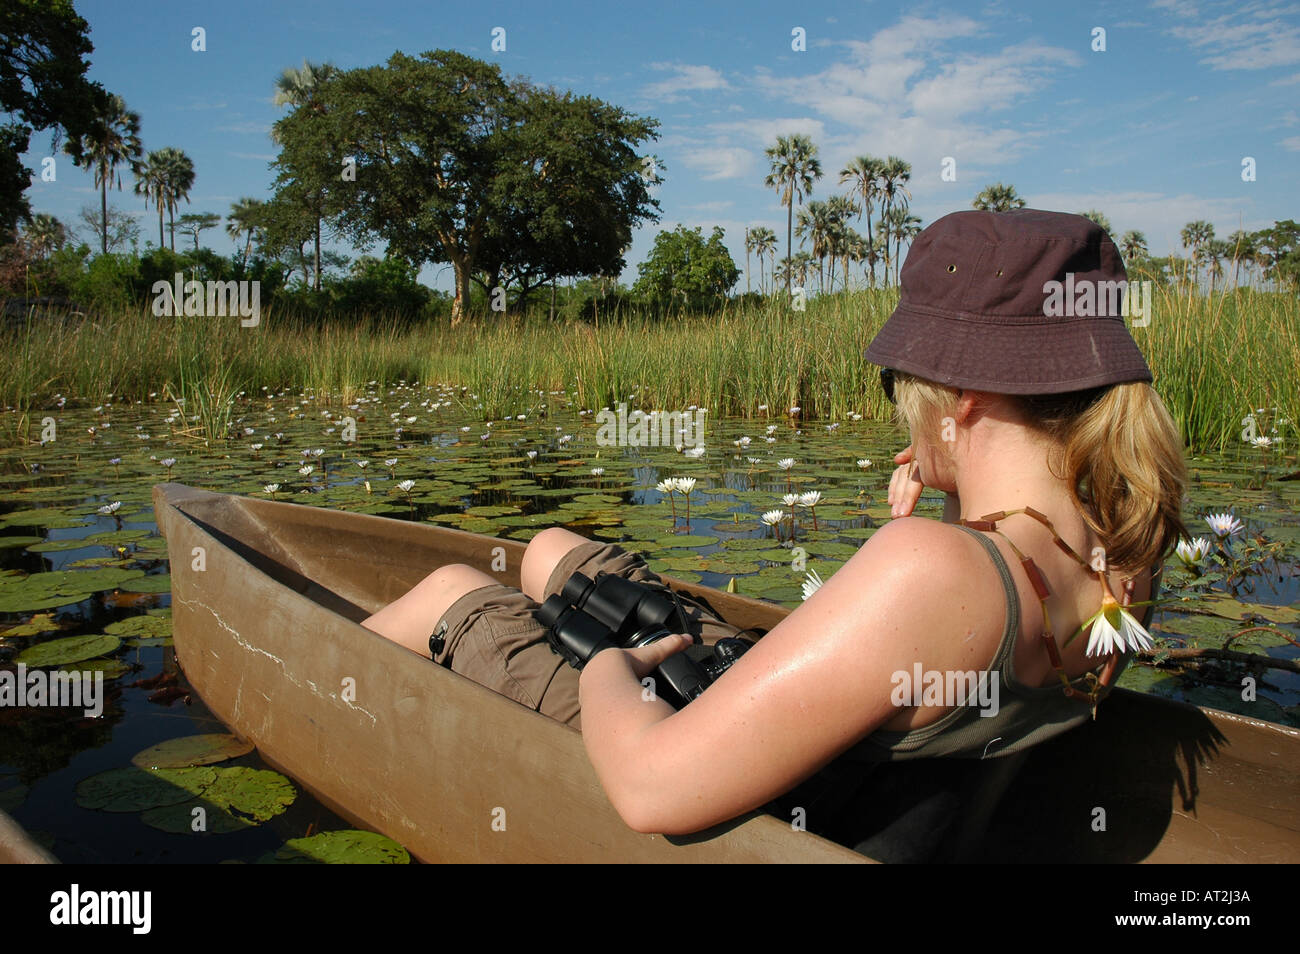 Female girl tourist in Mokoros on river near Tubu tree safari camp in Okavango Delta Botswana southern Afr - Stock Image